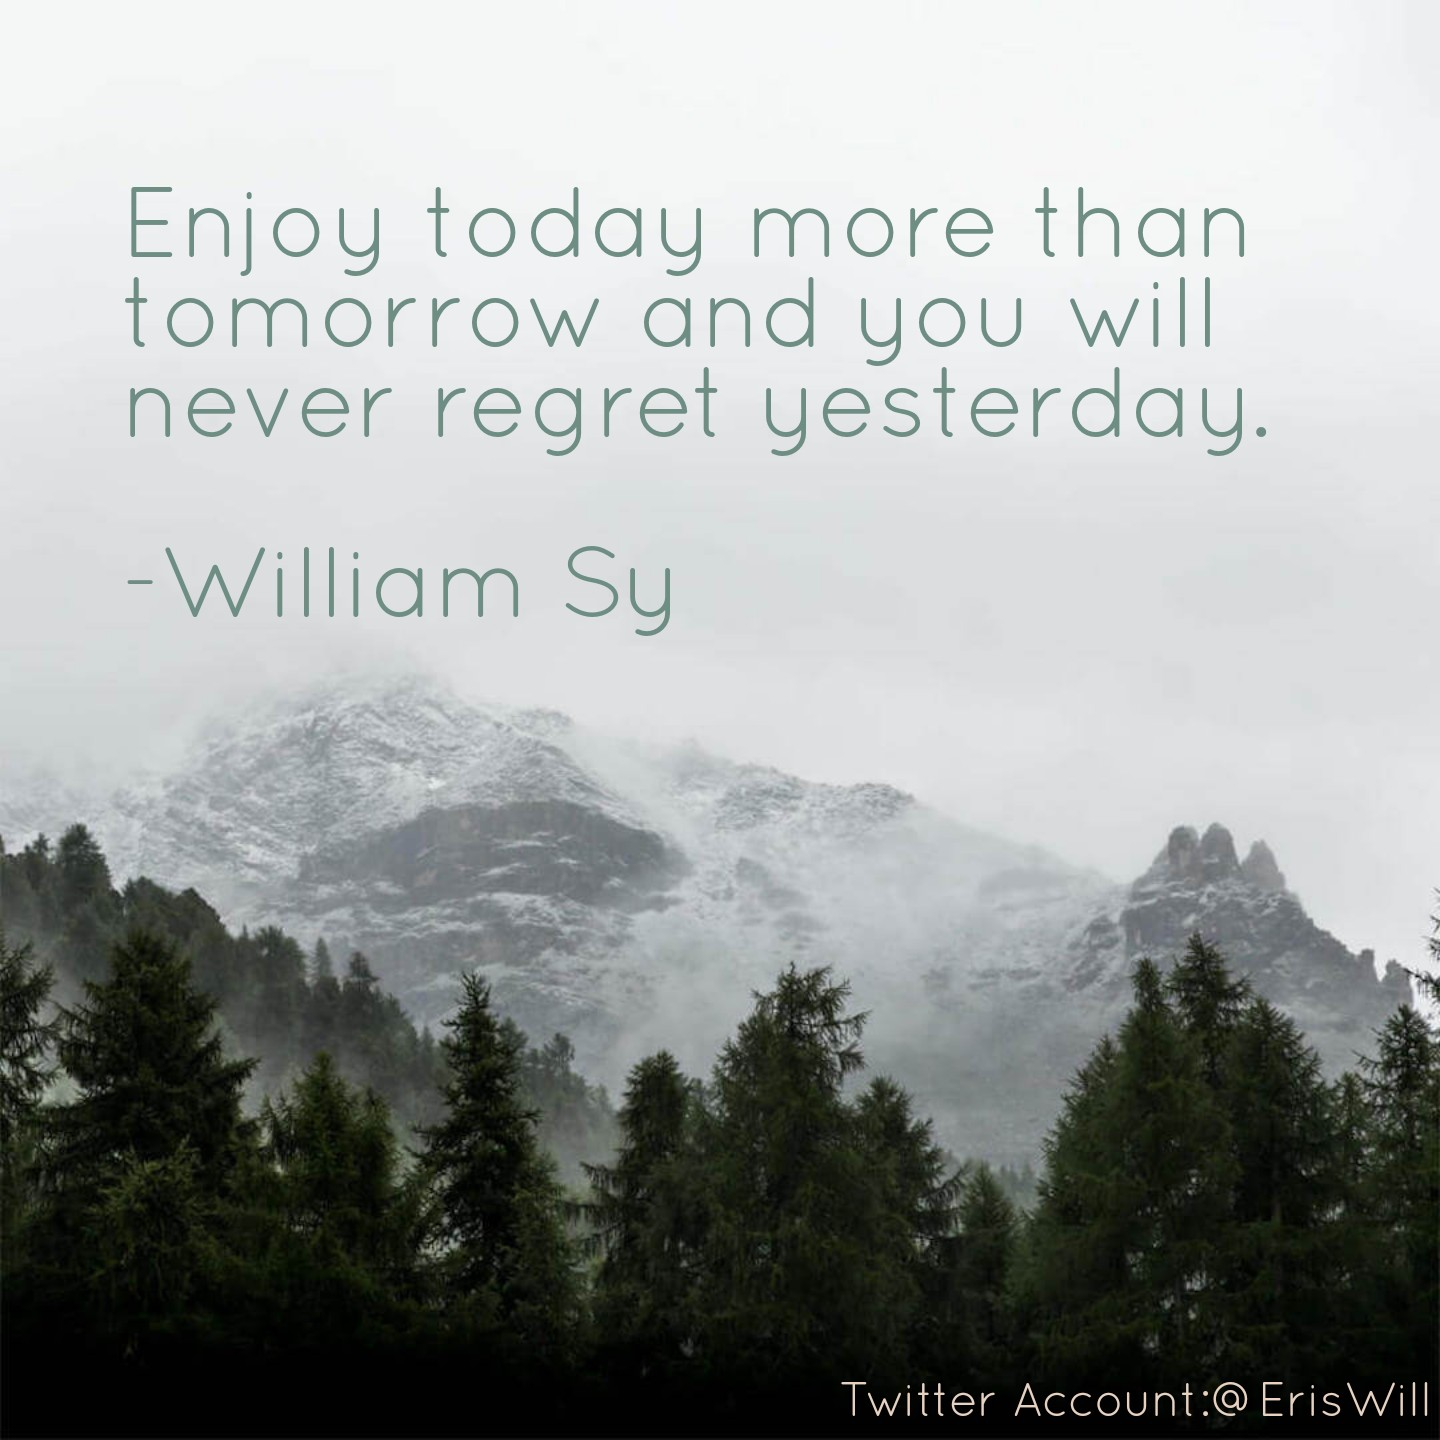 """Enjoy today more than tomorrow…"" -William Sy (1440×1440)"